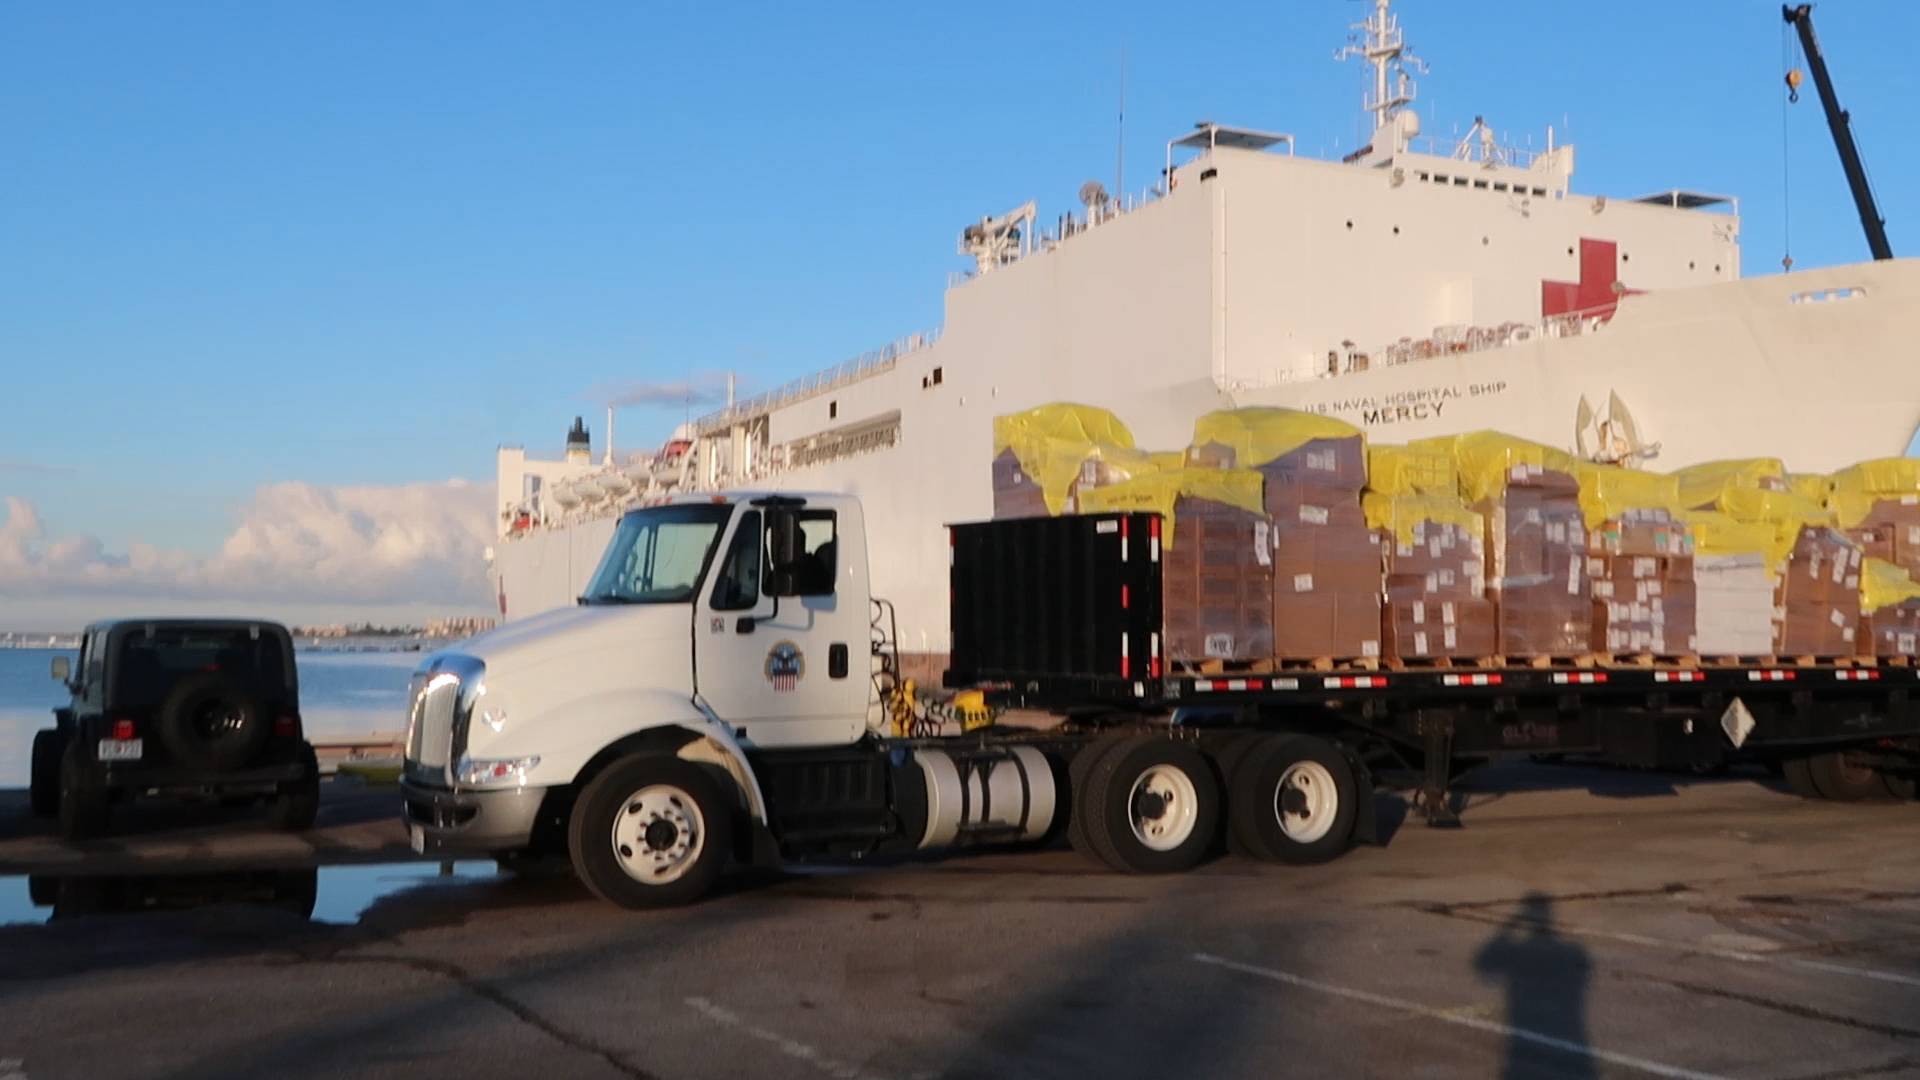 Defense Logistics Agency Distribution San Diego, California loads up Navy hospital ship for COVID-19 response